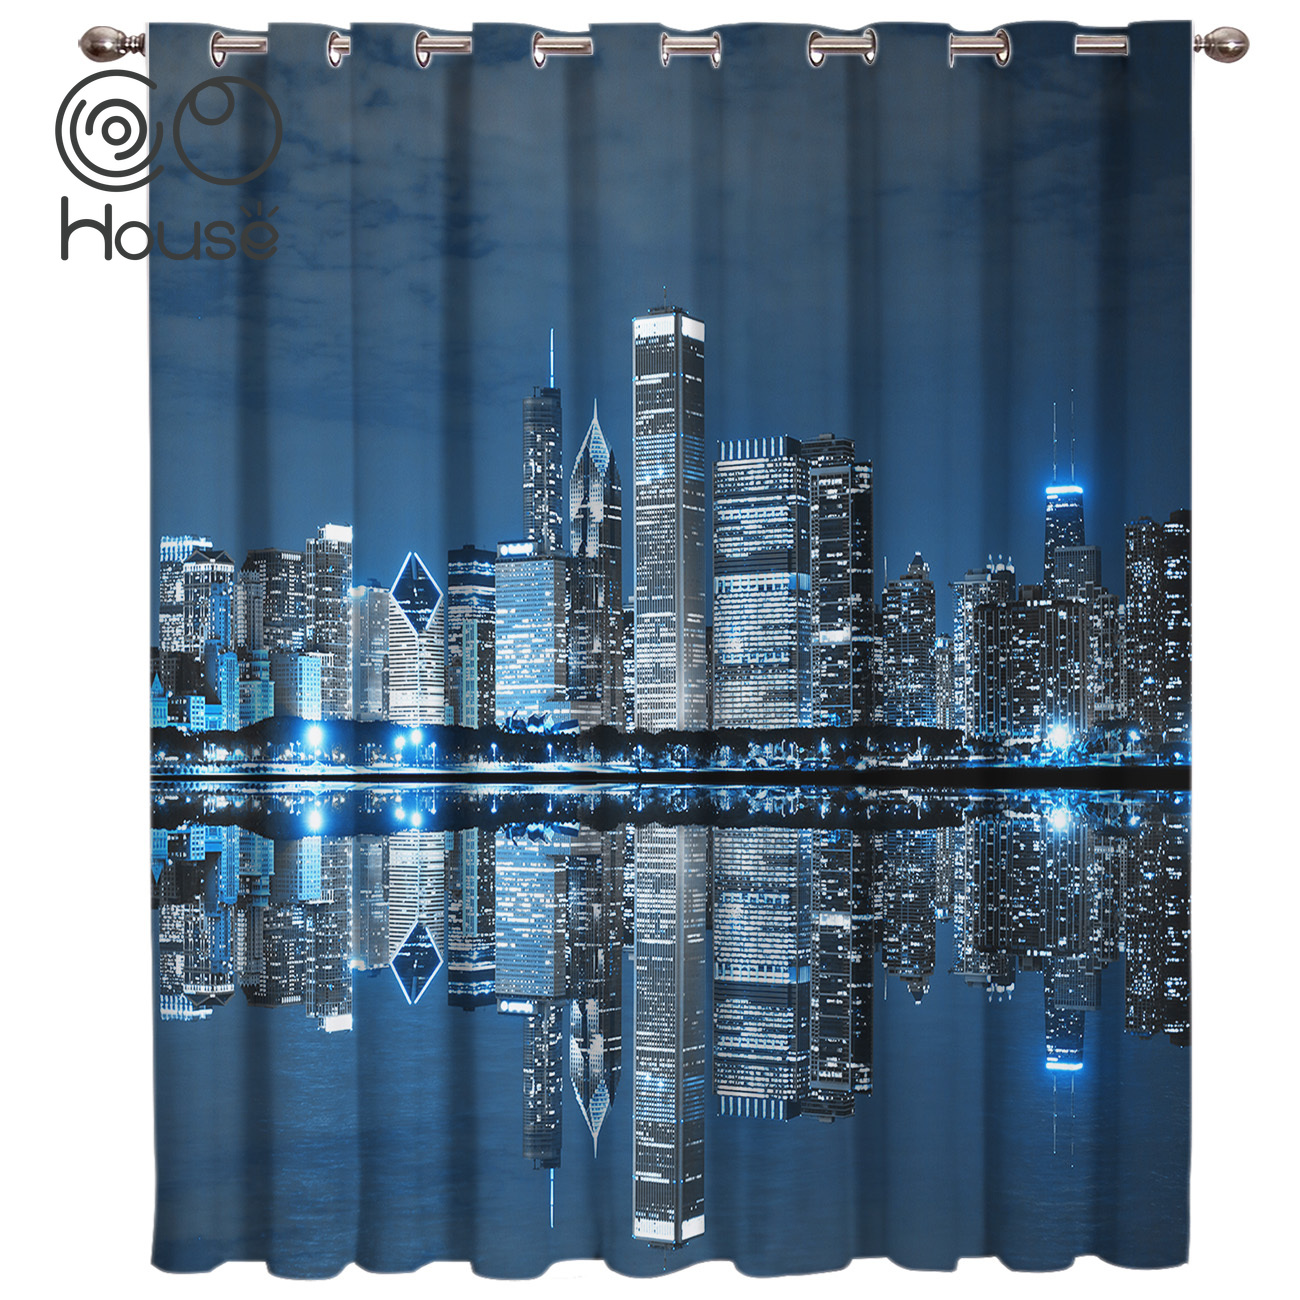 COCOHouse Chicago Landscape Architecture Window Treatments Curtains Valance Window Curtains Dark Window Blinds Bathroom Bedroom